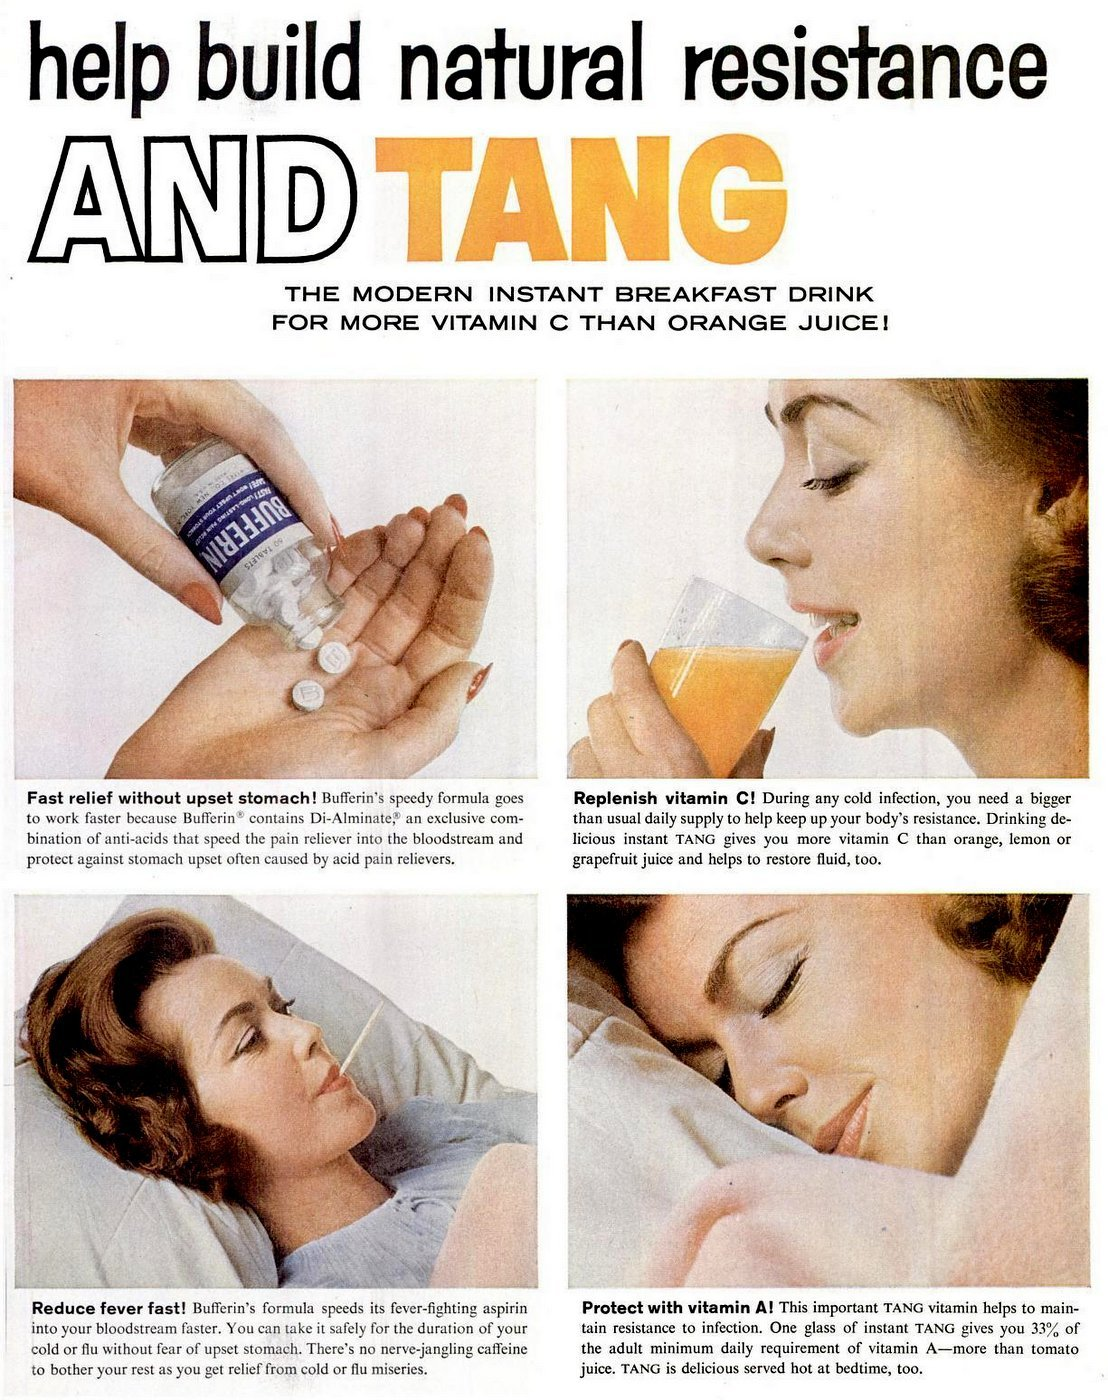 1960 Tang drink for health